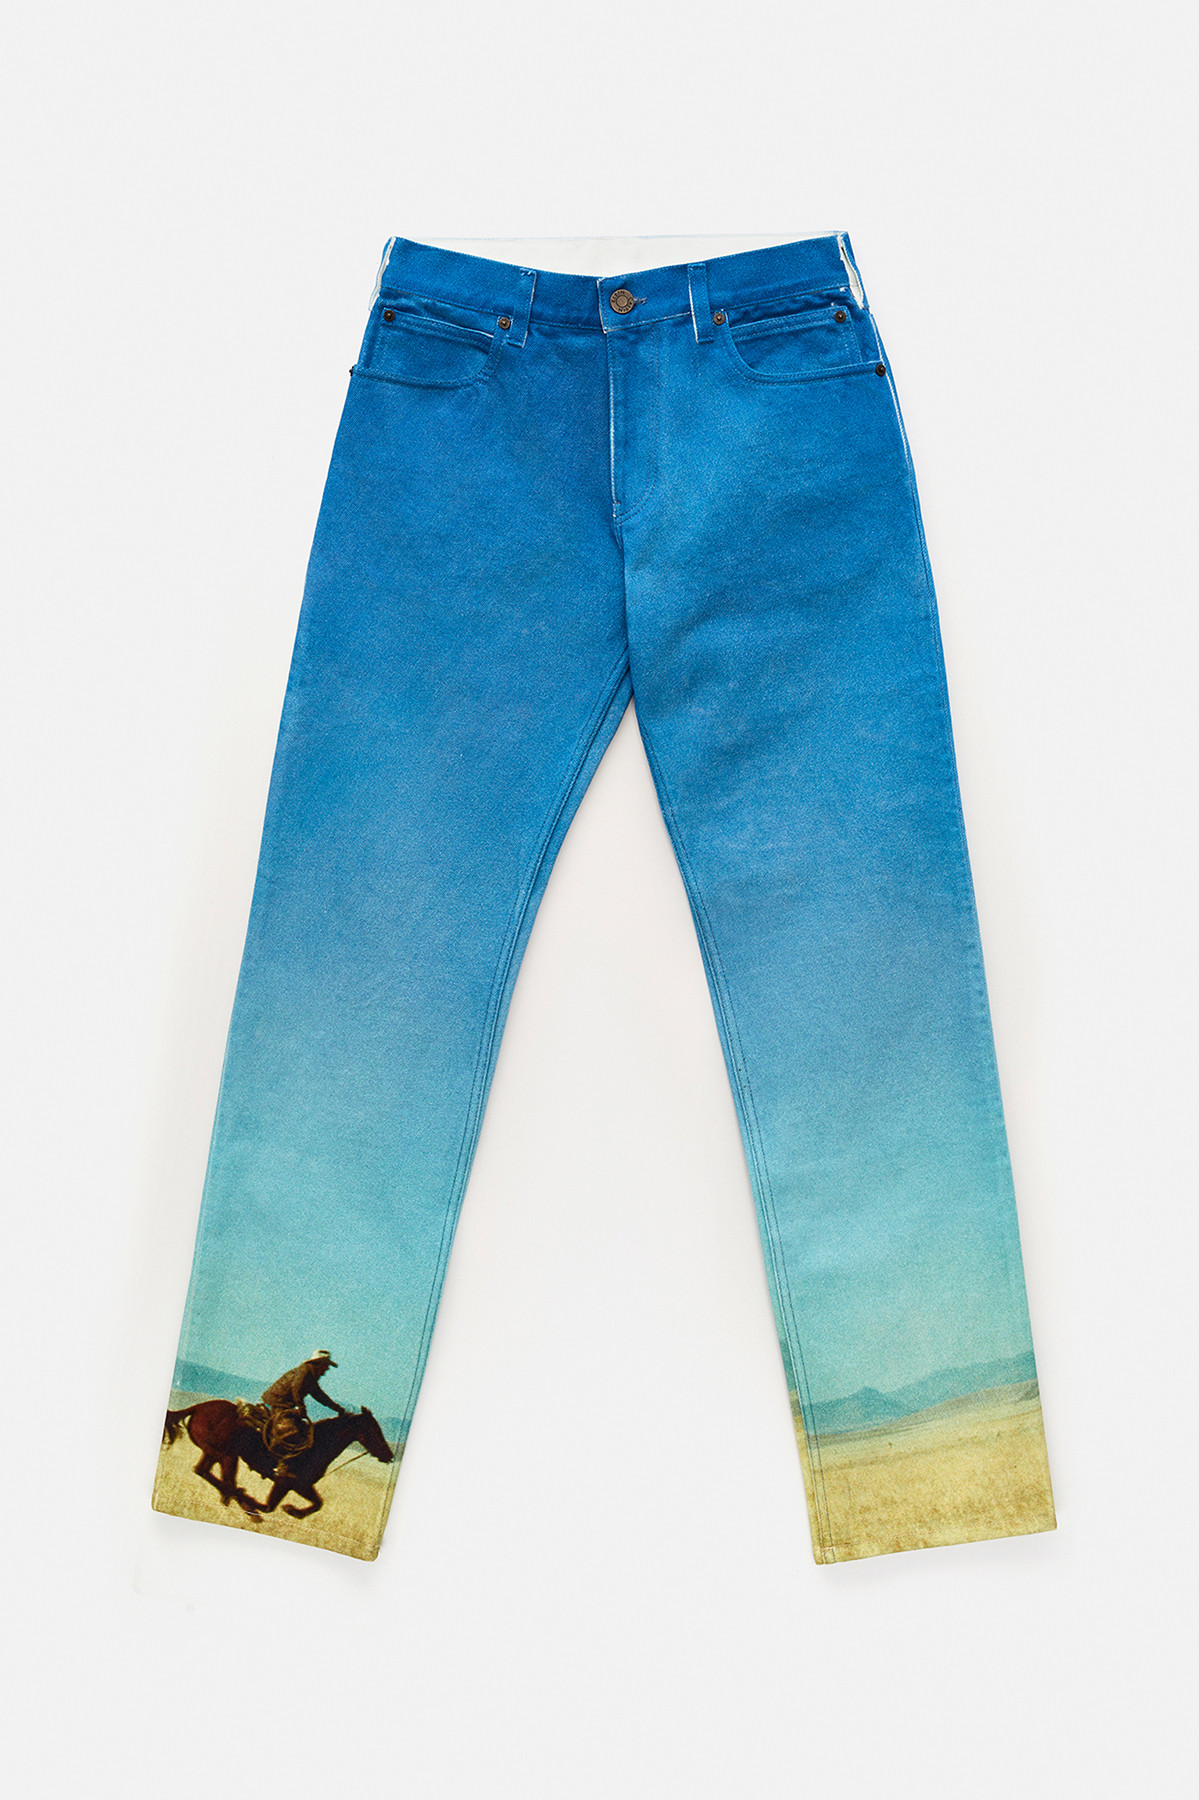 https_%2F%2Fhypebeast.com%2Fimage%2F2018%2F07%2Fcalvin-klein-jeans-Est-1978-delivery-1-17.jpg